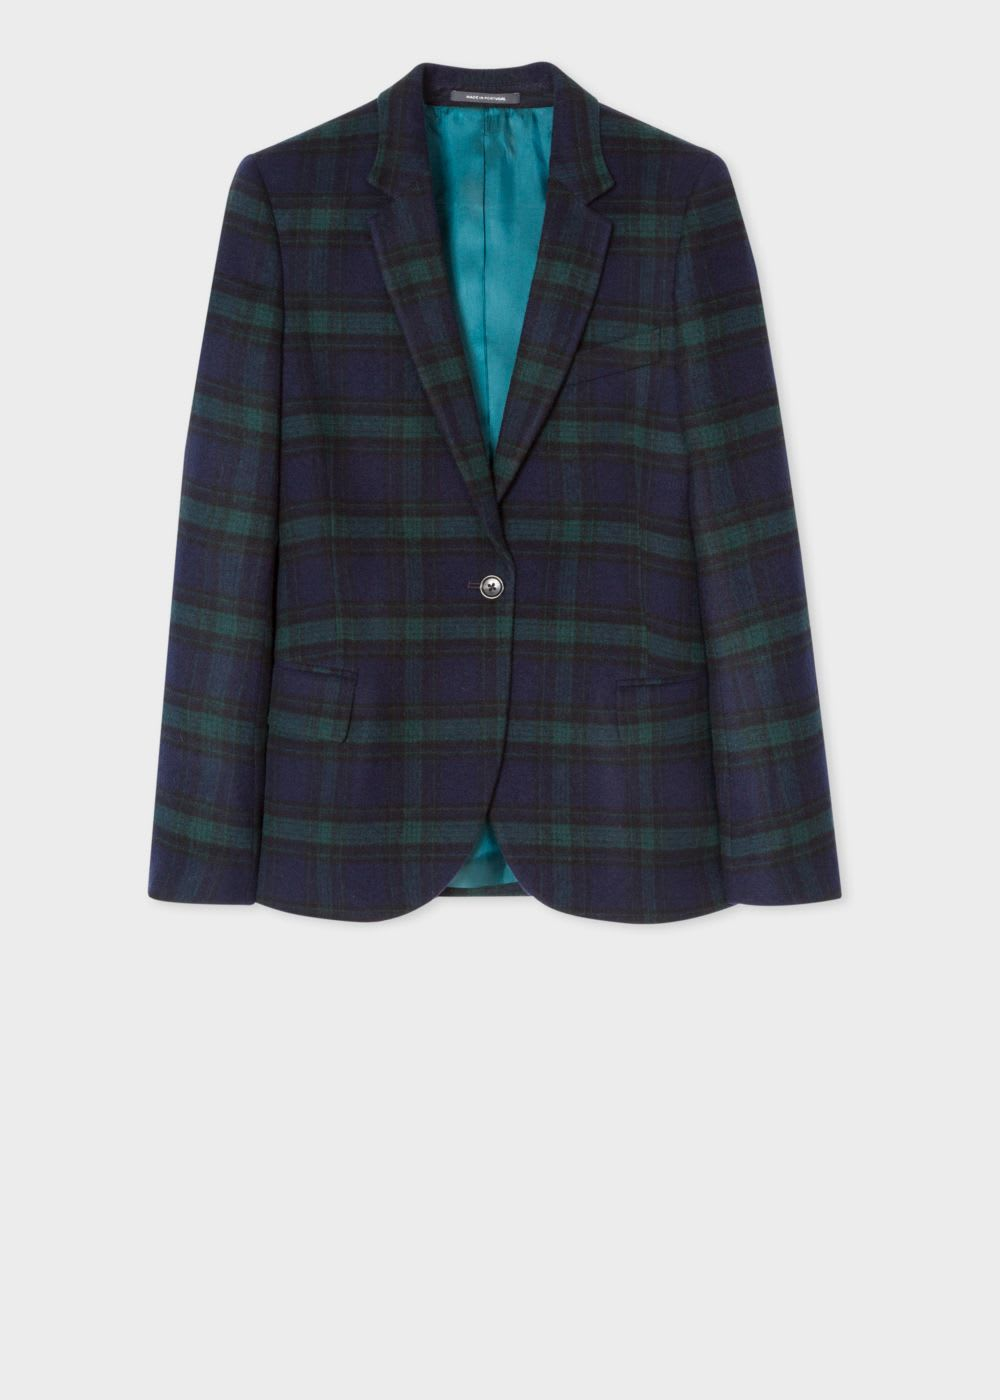 PS Paul Smith Blackwatch Tartan Wool Blend Blazer